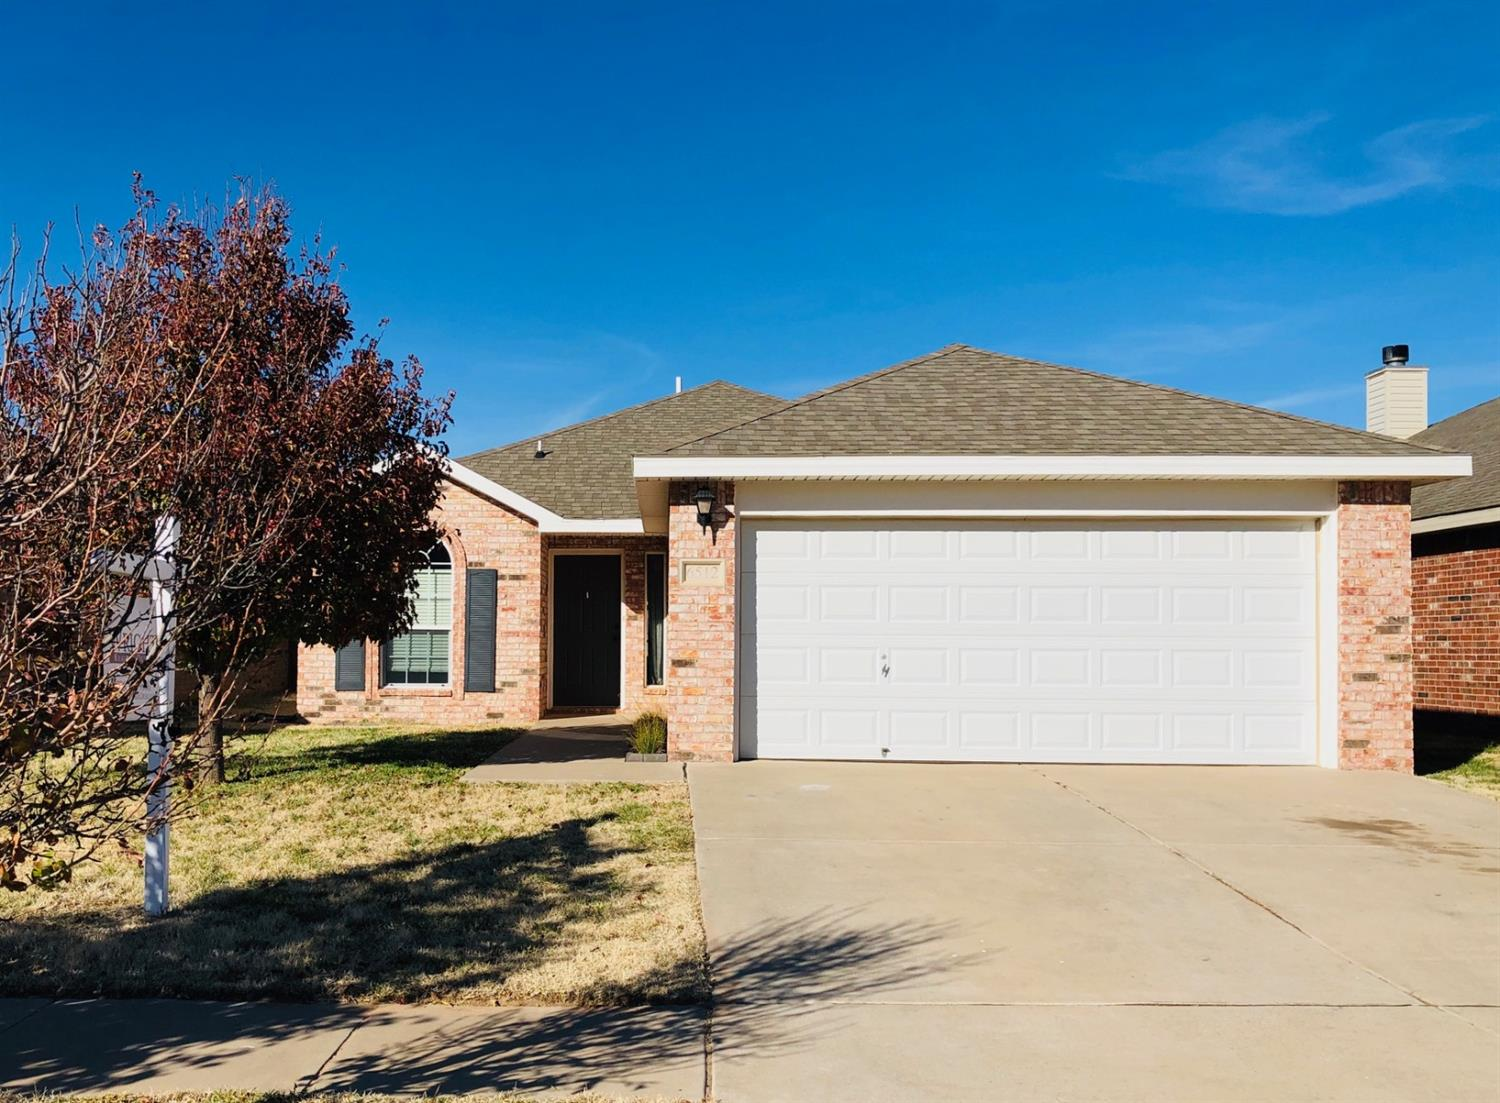 6512 94th Street, Lubbock in Lubbock County, TX 79424 Home for Sale